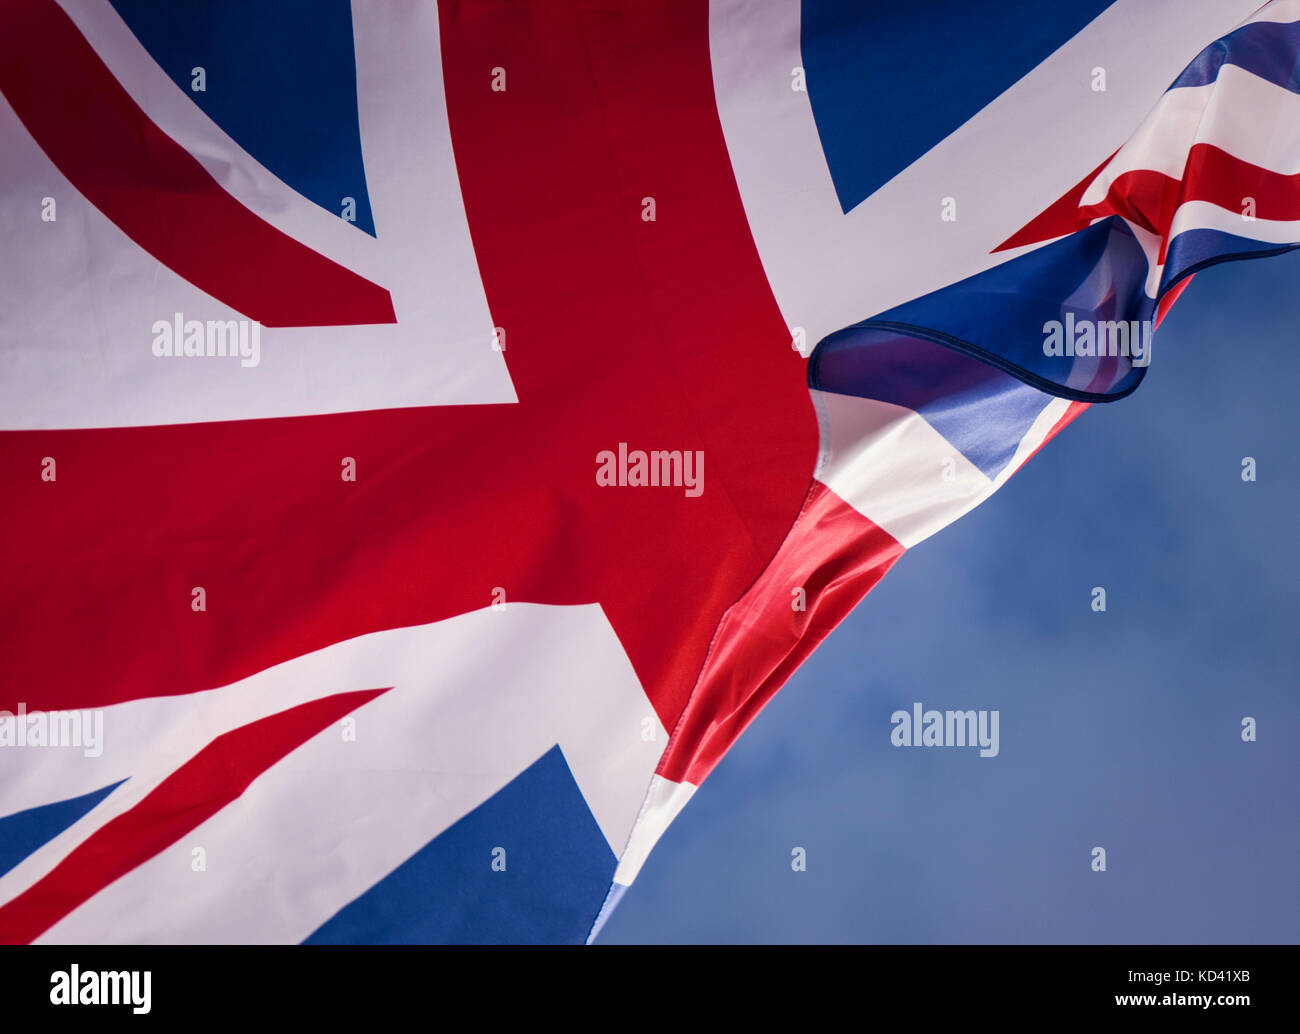 Union Jack Flag flying against blue sky with breeze blowing through as metaphor concept for Borders Brexit Immigration Stock Photo